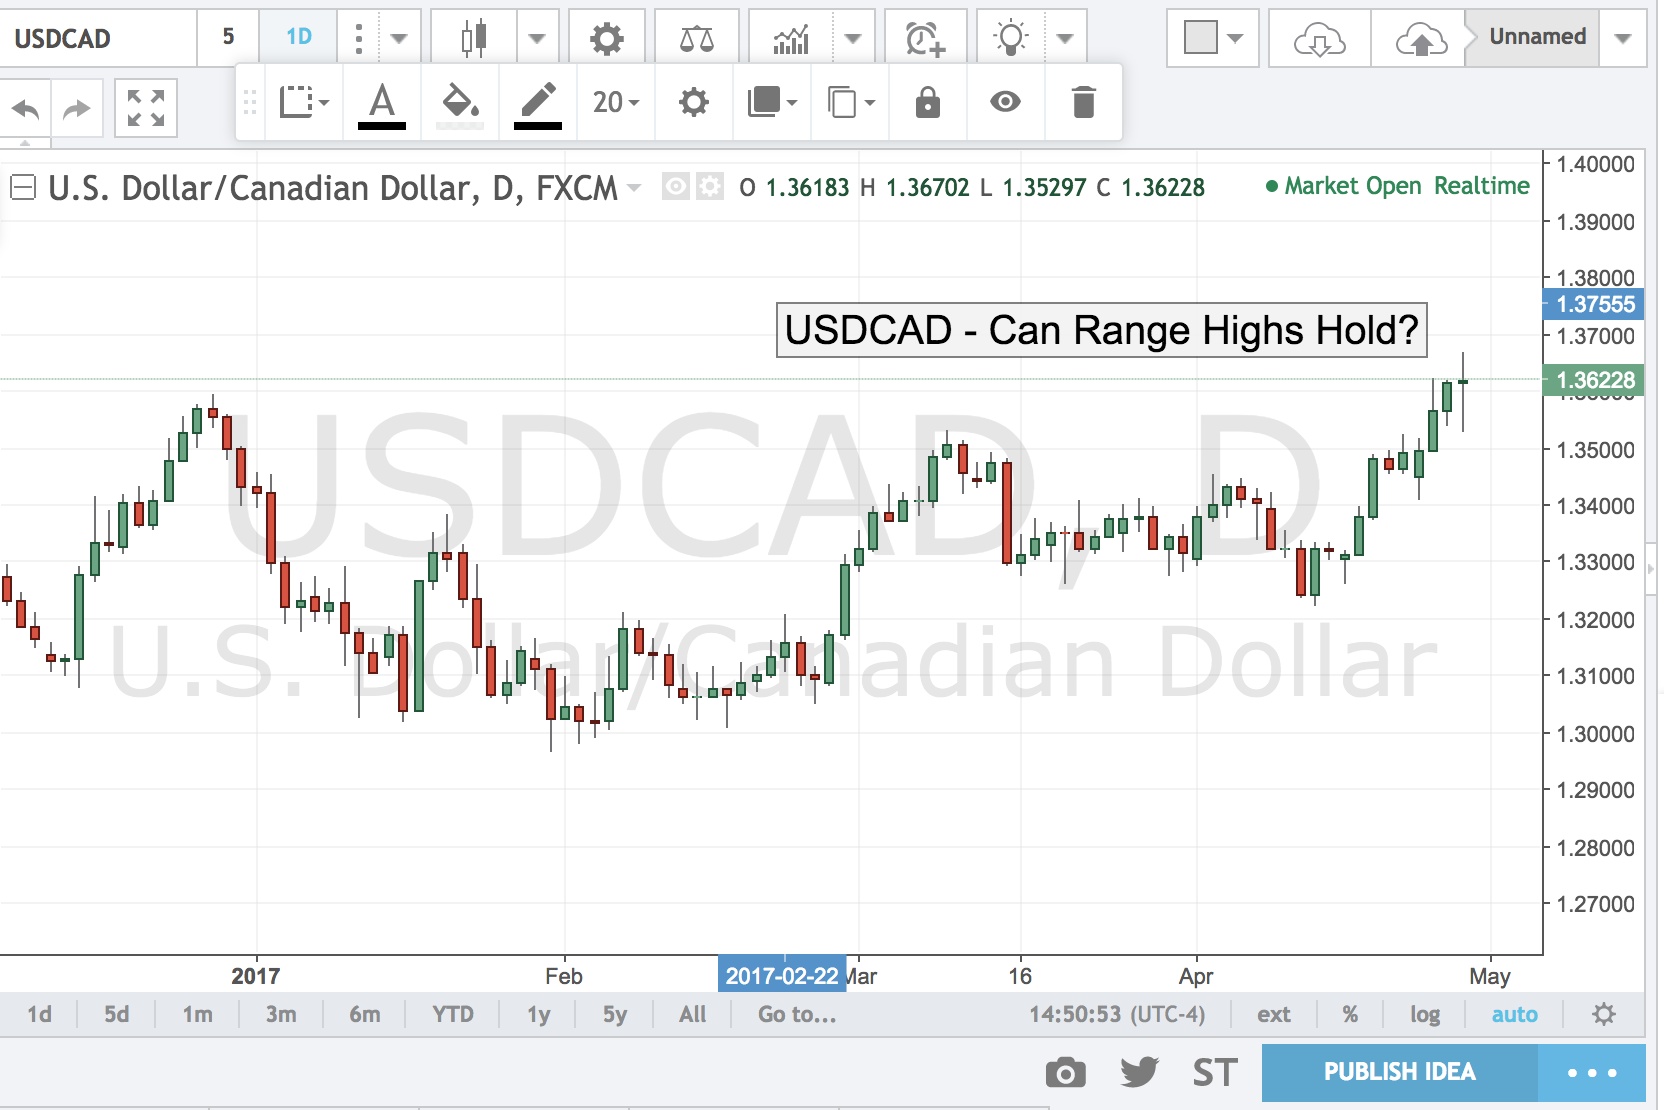 USDCAD – Can Range Highs Hold?